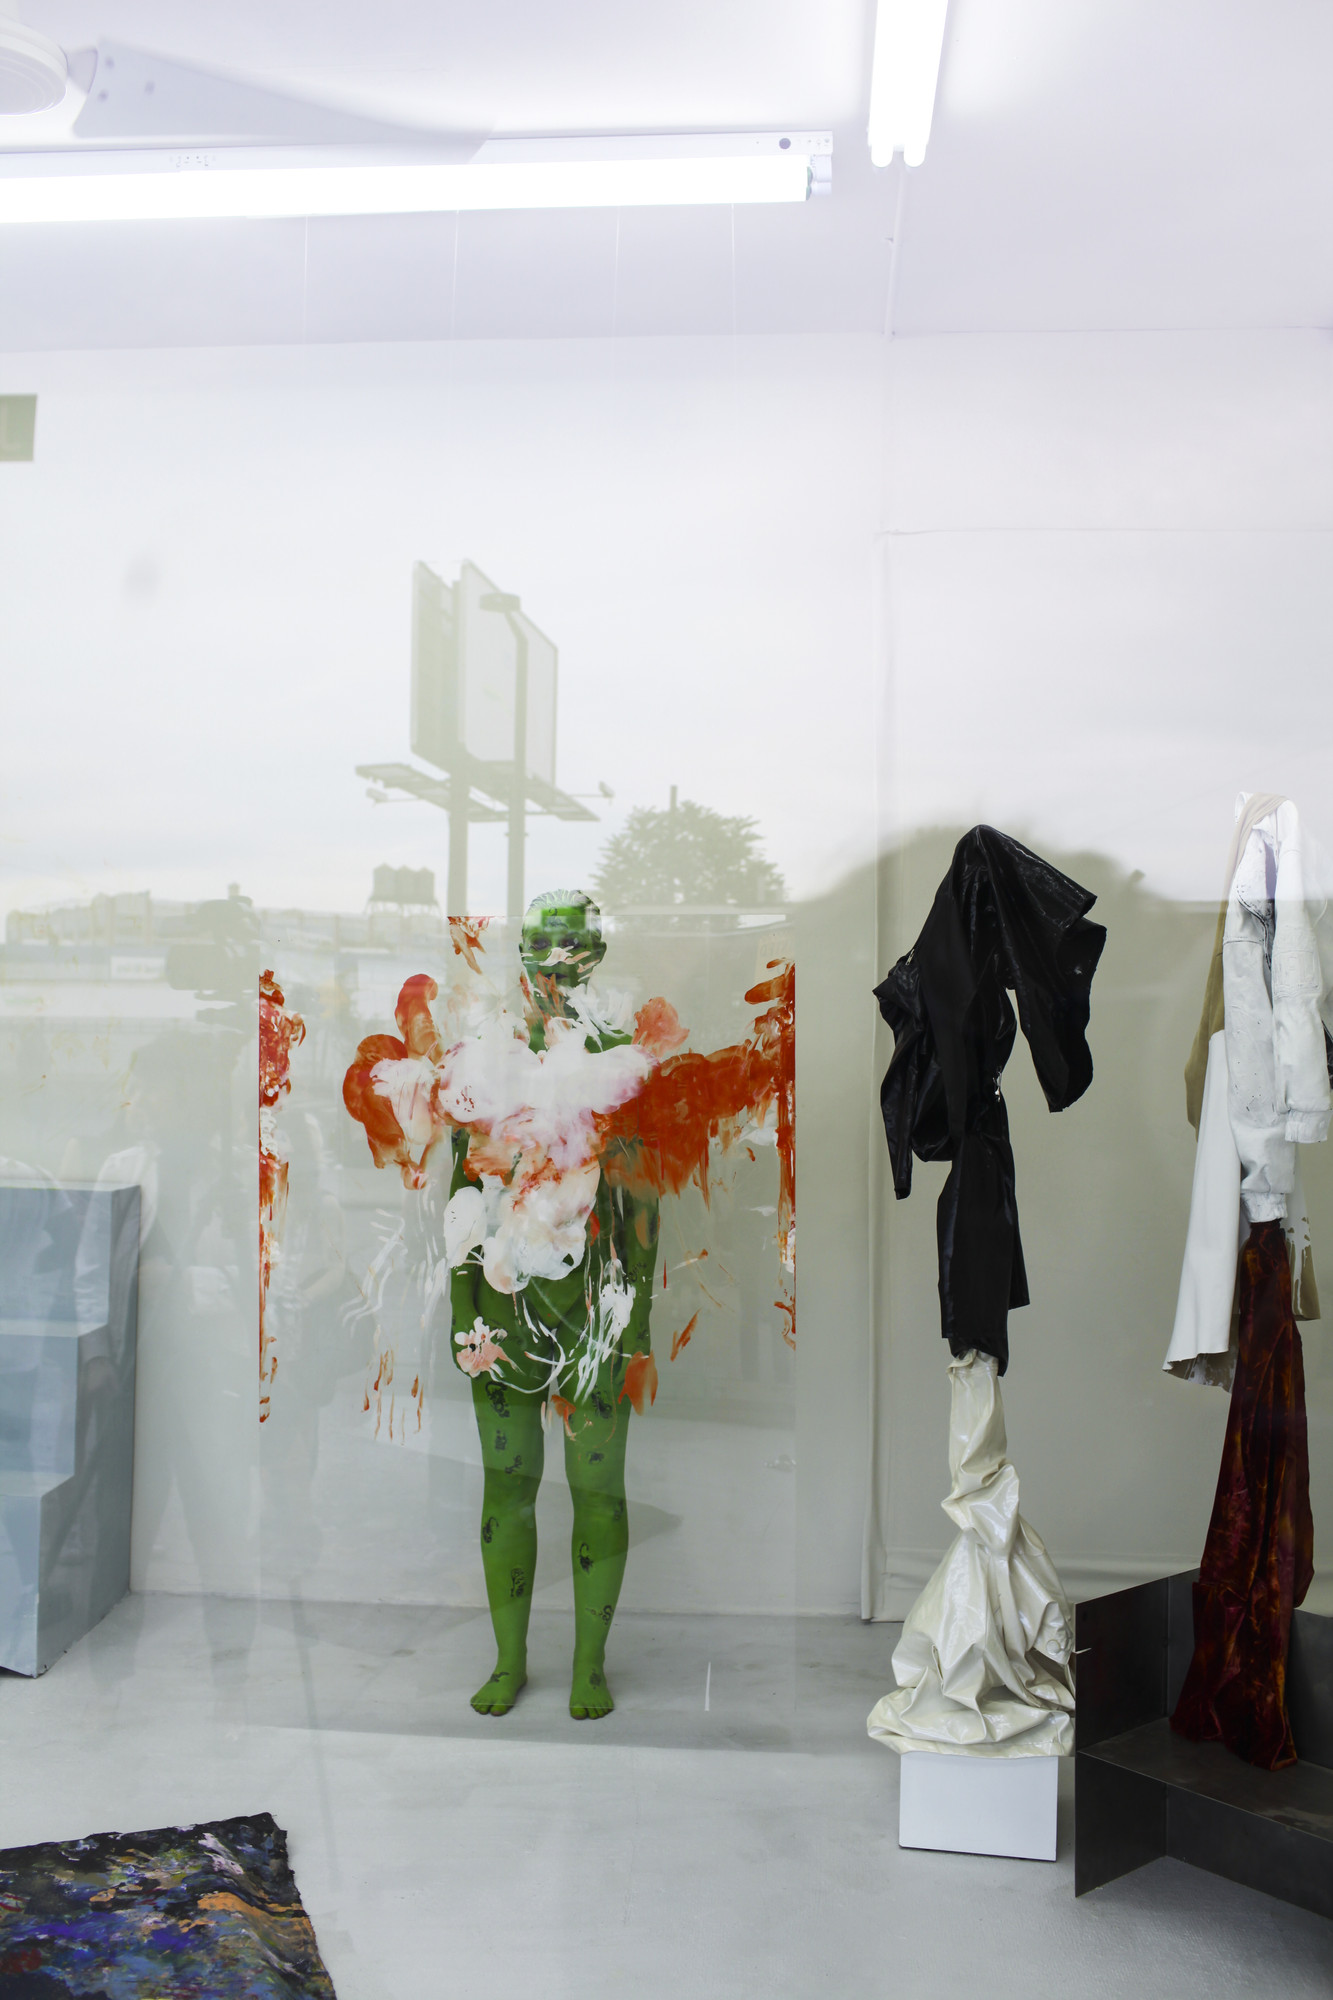 Donna Huanca, SADE ROOM (famously reclusive), 2014, at MoMA PS1 as a part of VW Sunday Sessions. © 2014 MoMA PS1, New York.